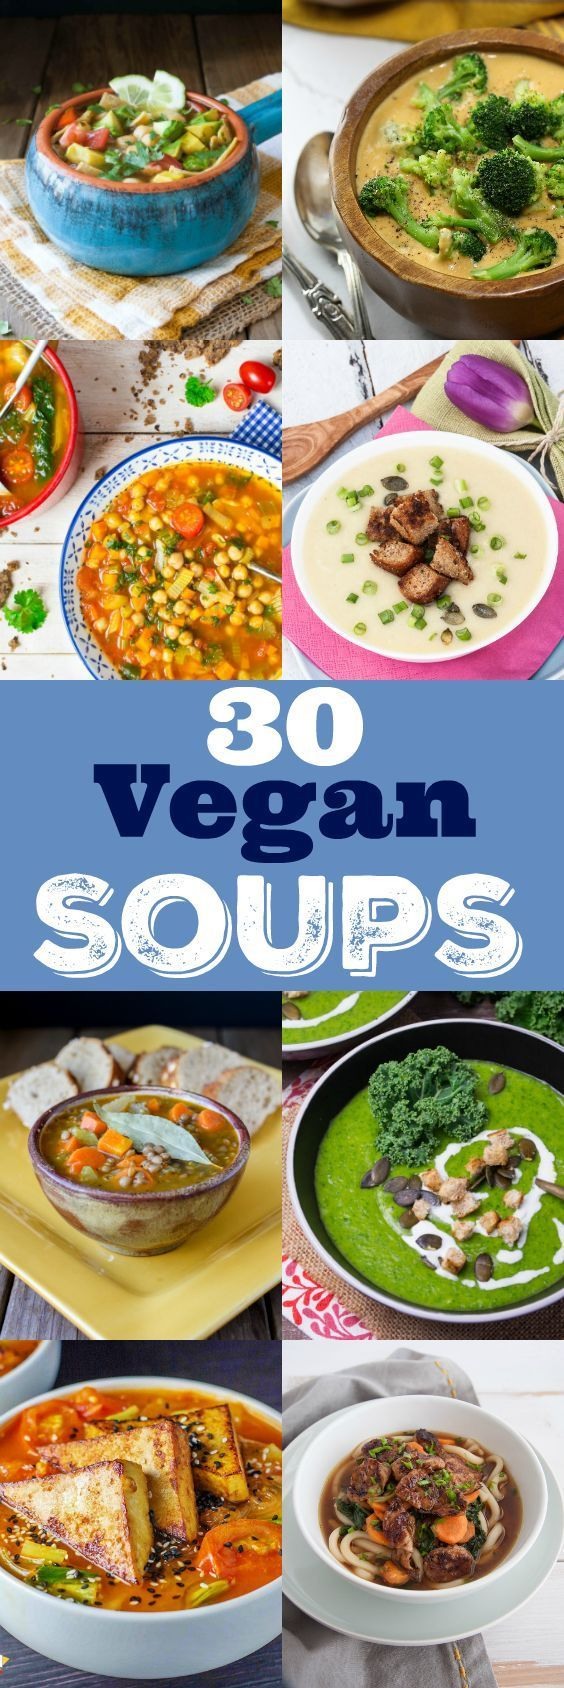 If you're looking for delicious and filling vegan soups and stews, look no further! I teamed up with some of my blogger friends and we've got you covered with 30 nourishing and tasty soups for cold days!